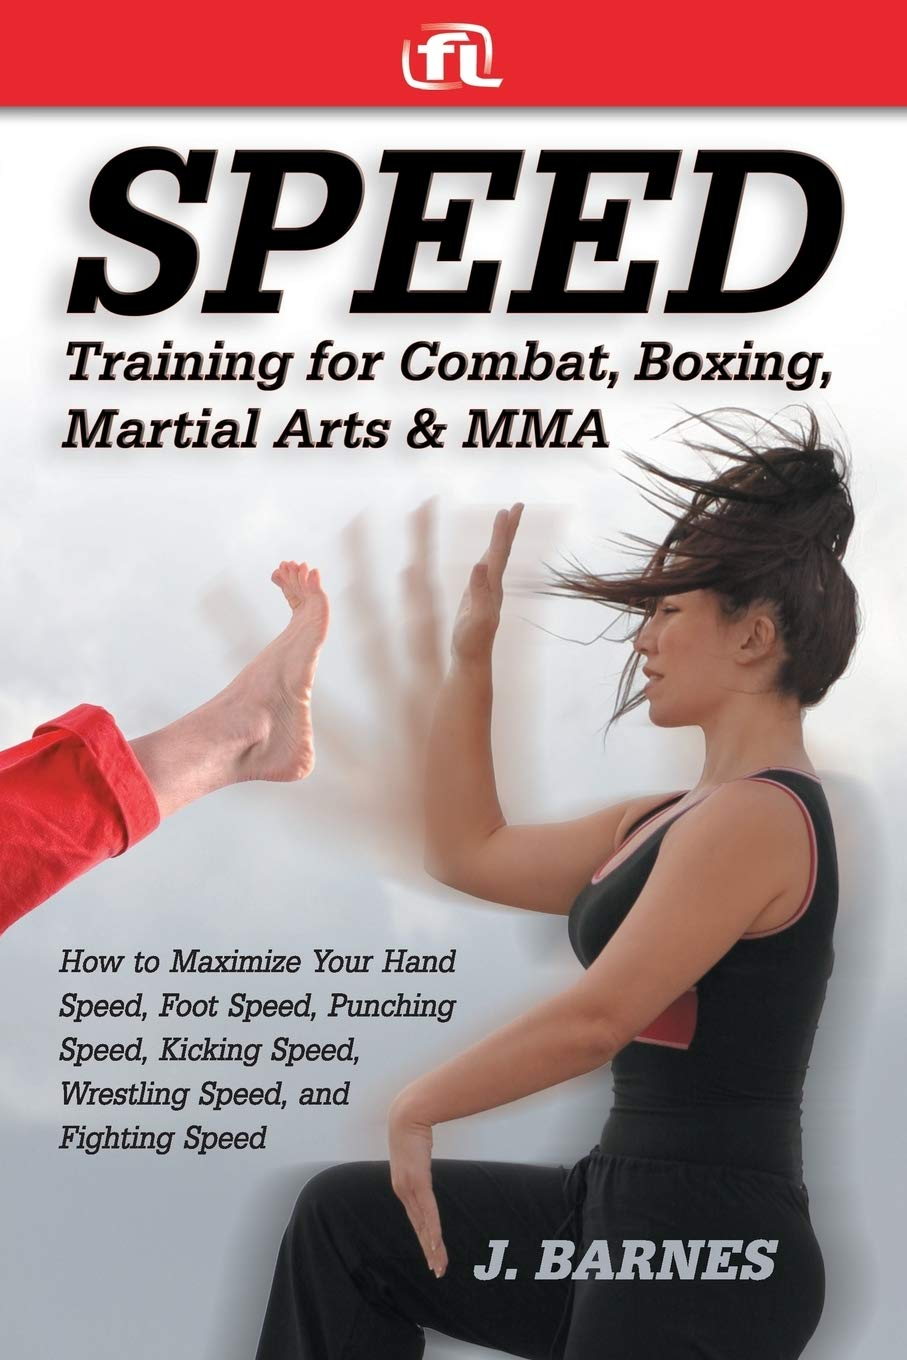 Image OfSpeed Training For Combat, Boxing, Martial Arts, And MMA: How To Maximize Your Hand Speed, Foot Speed, Punching Speed, Kic...